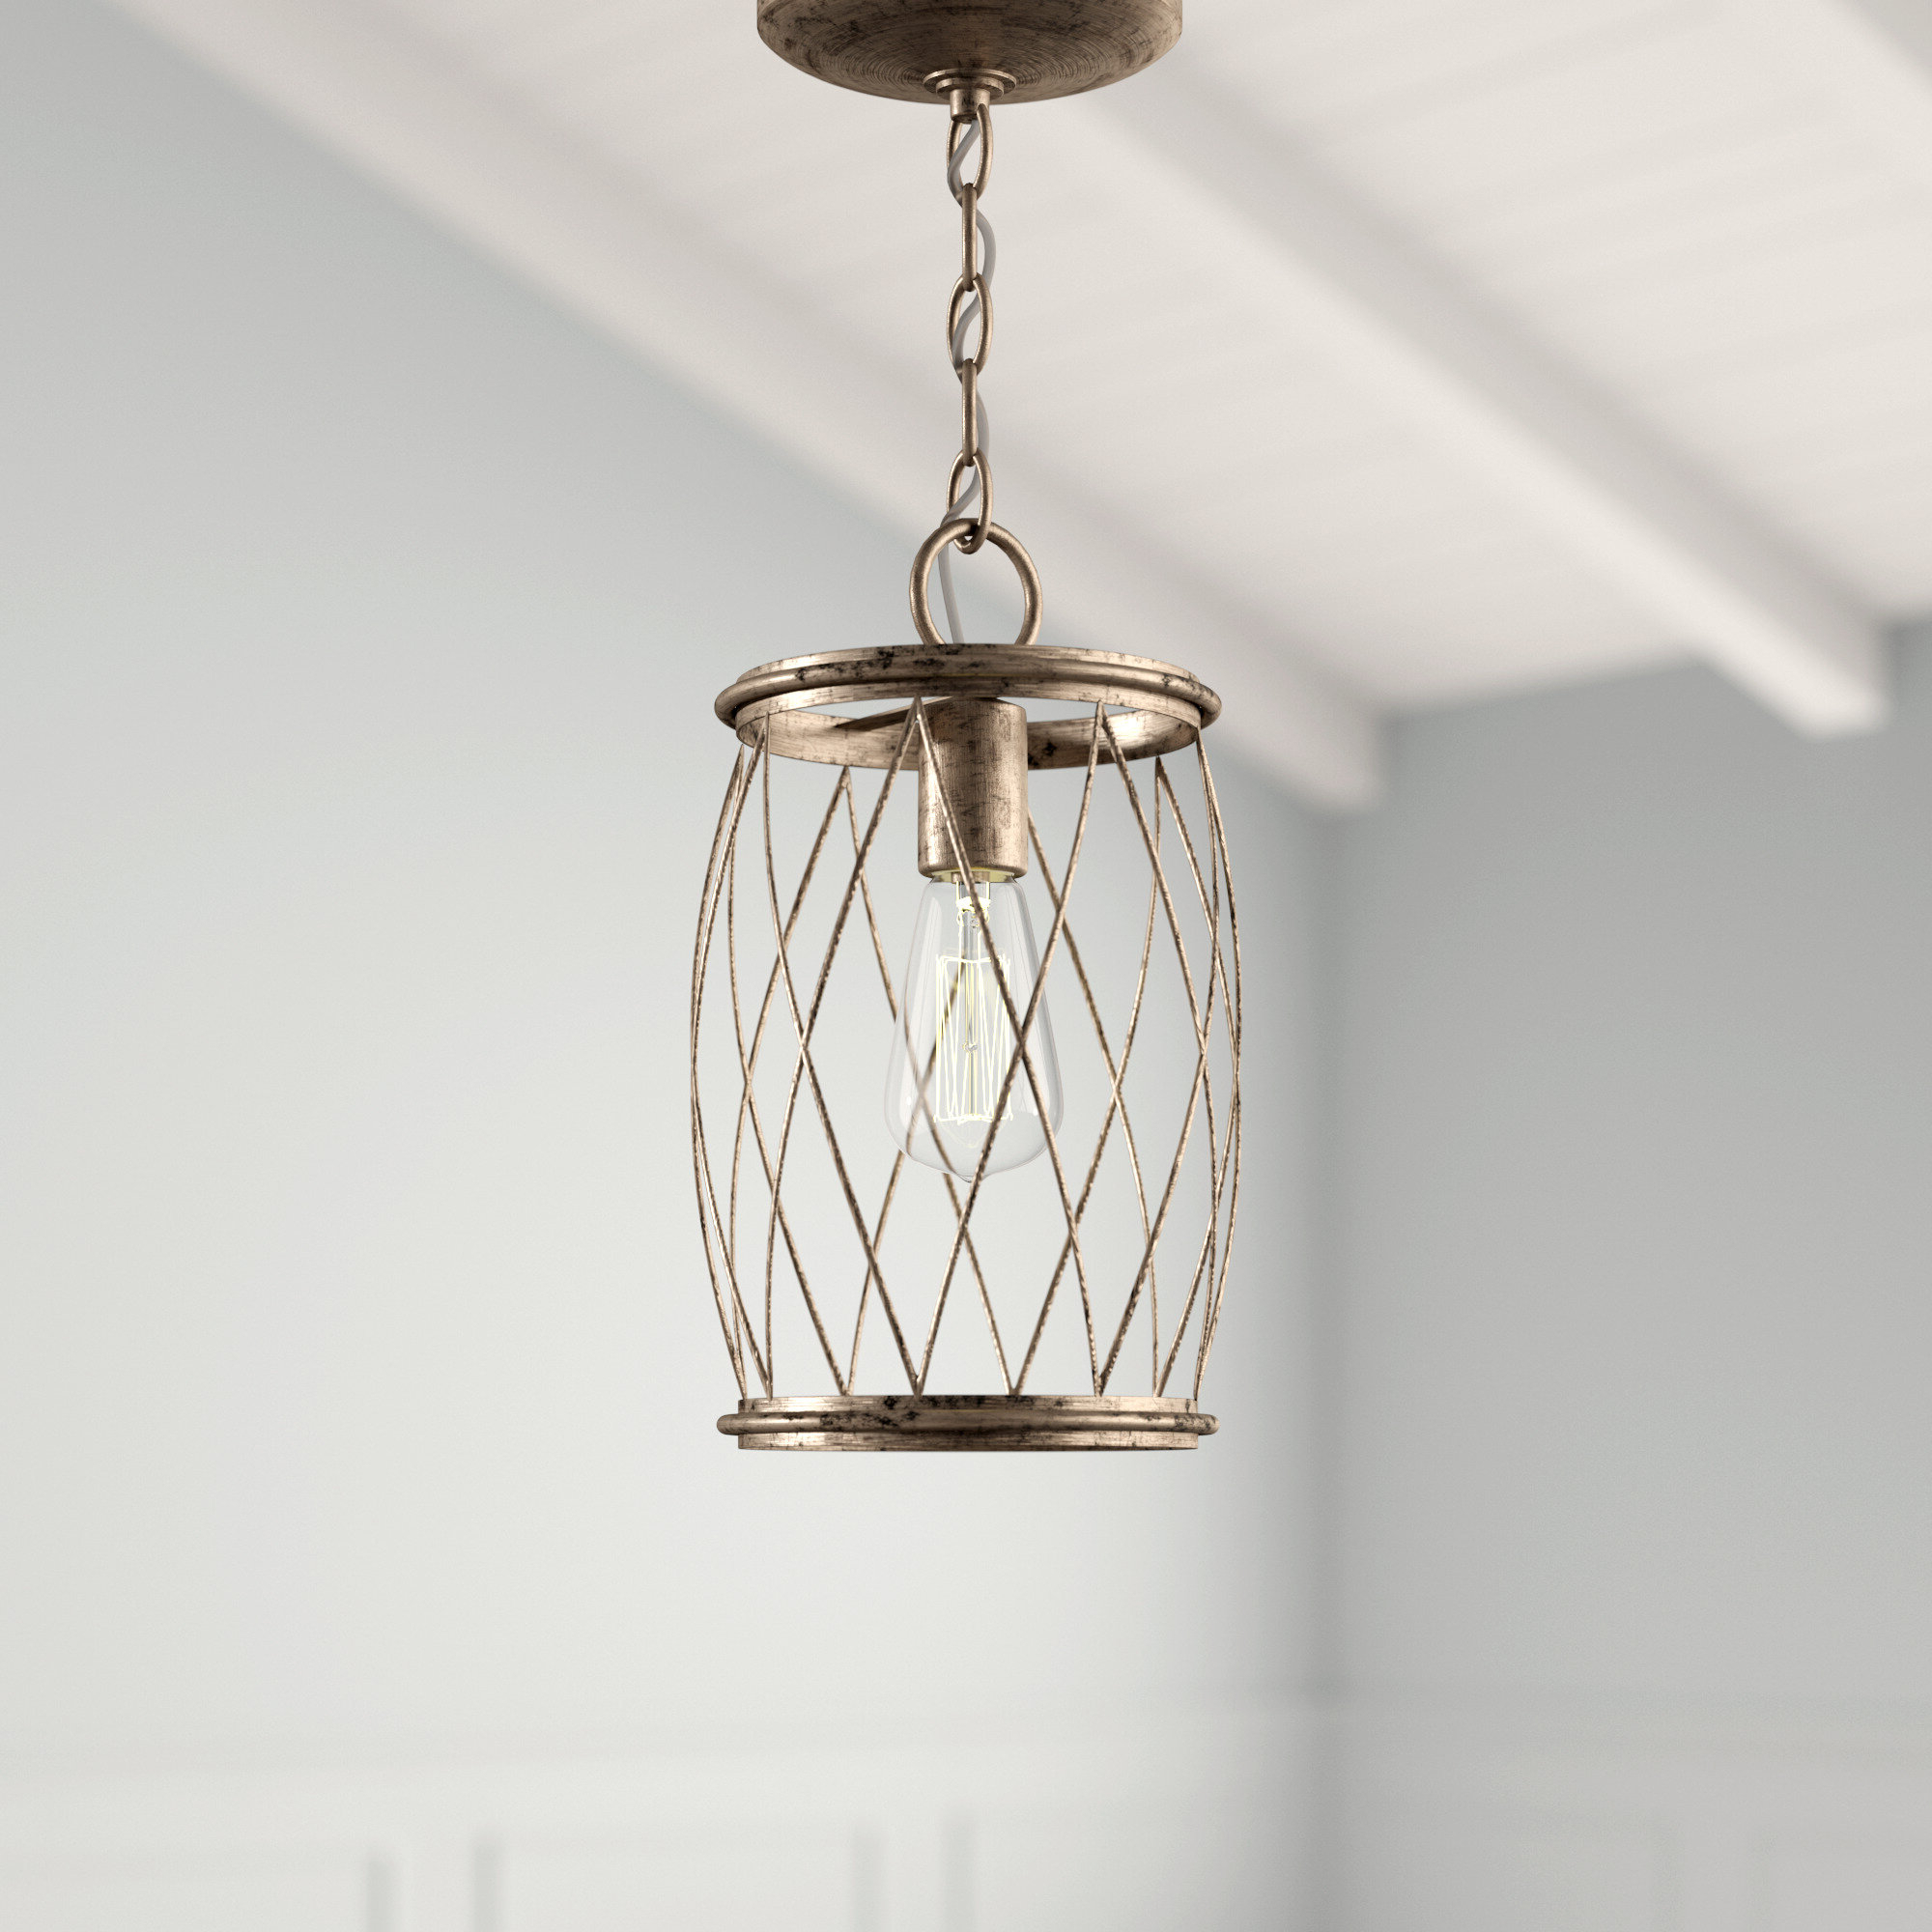 2020 Meryl 1 Light Single Cylinder Pendant With Regard To Poynter 1 Light Single Cylinder Pendants (Gallery 5 of 20)